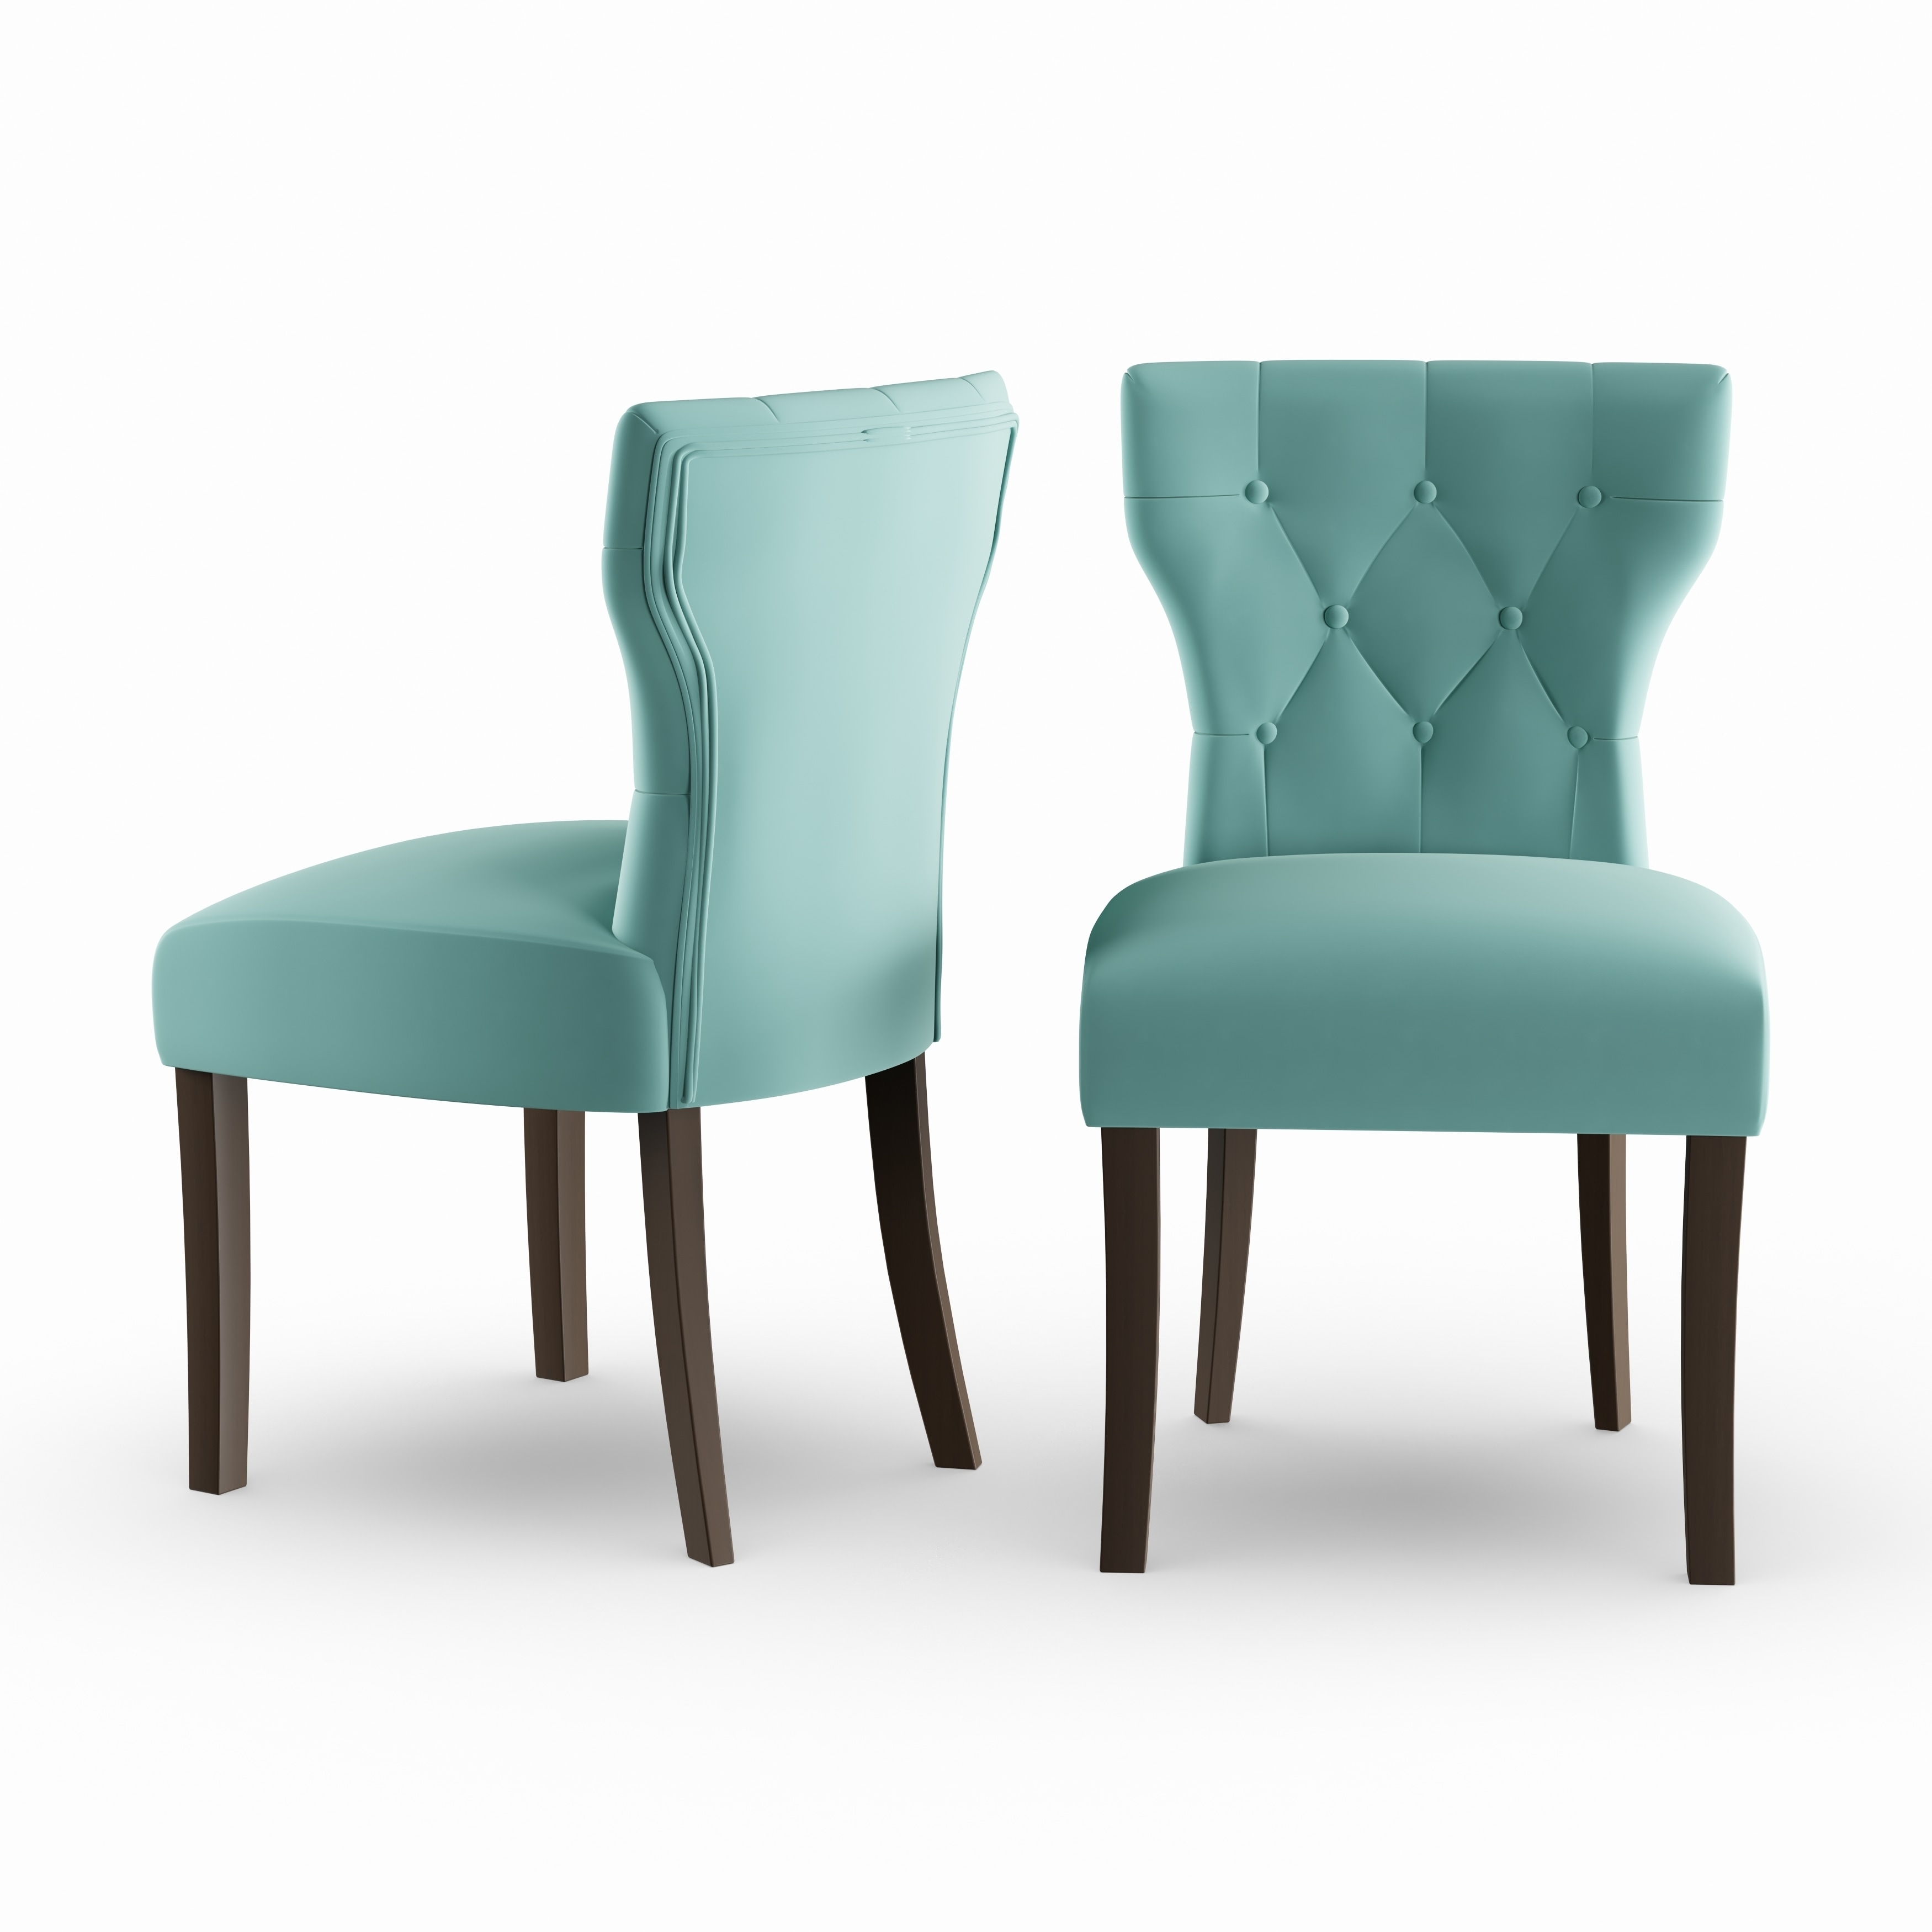 Copper Dining Chairs Copper Grove Lagunas Deep Turquoise Blue Velvet Upholstered Armless Dining Chairs Set Of 2